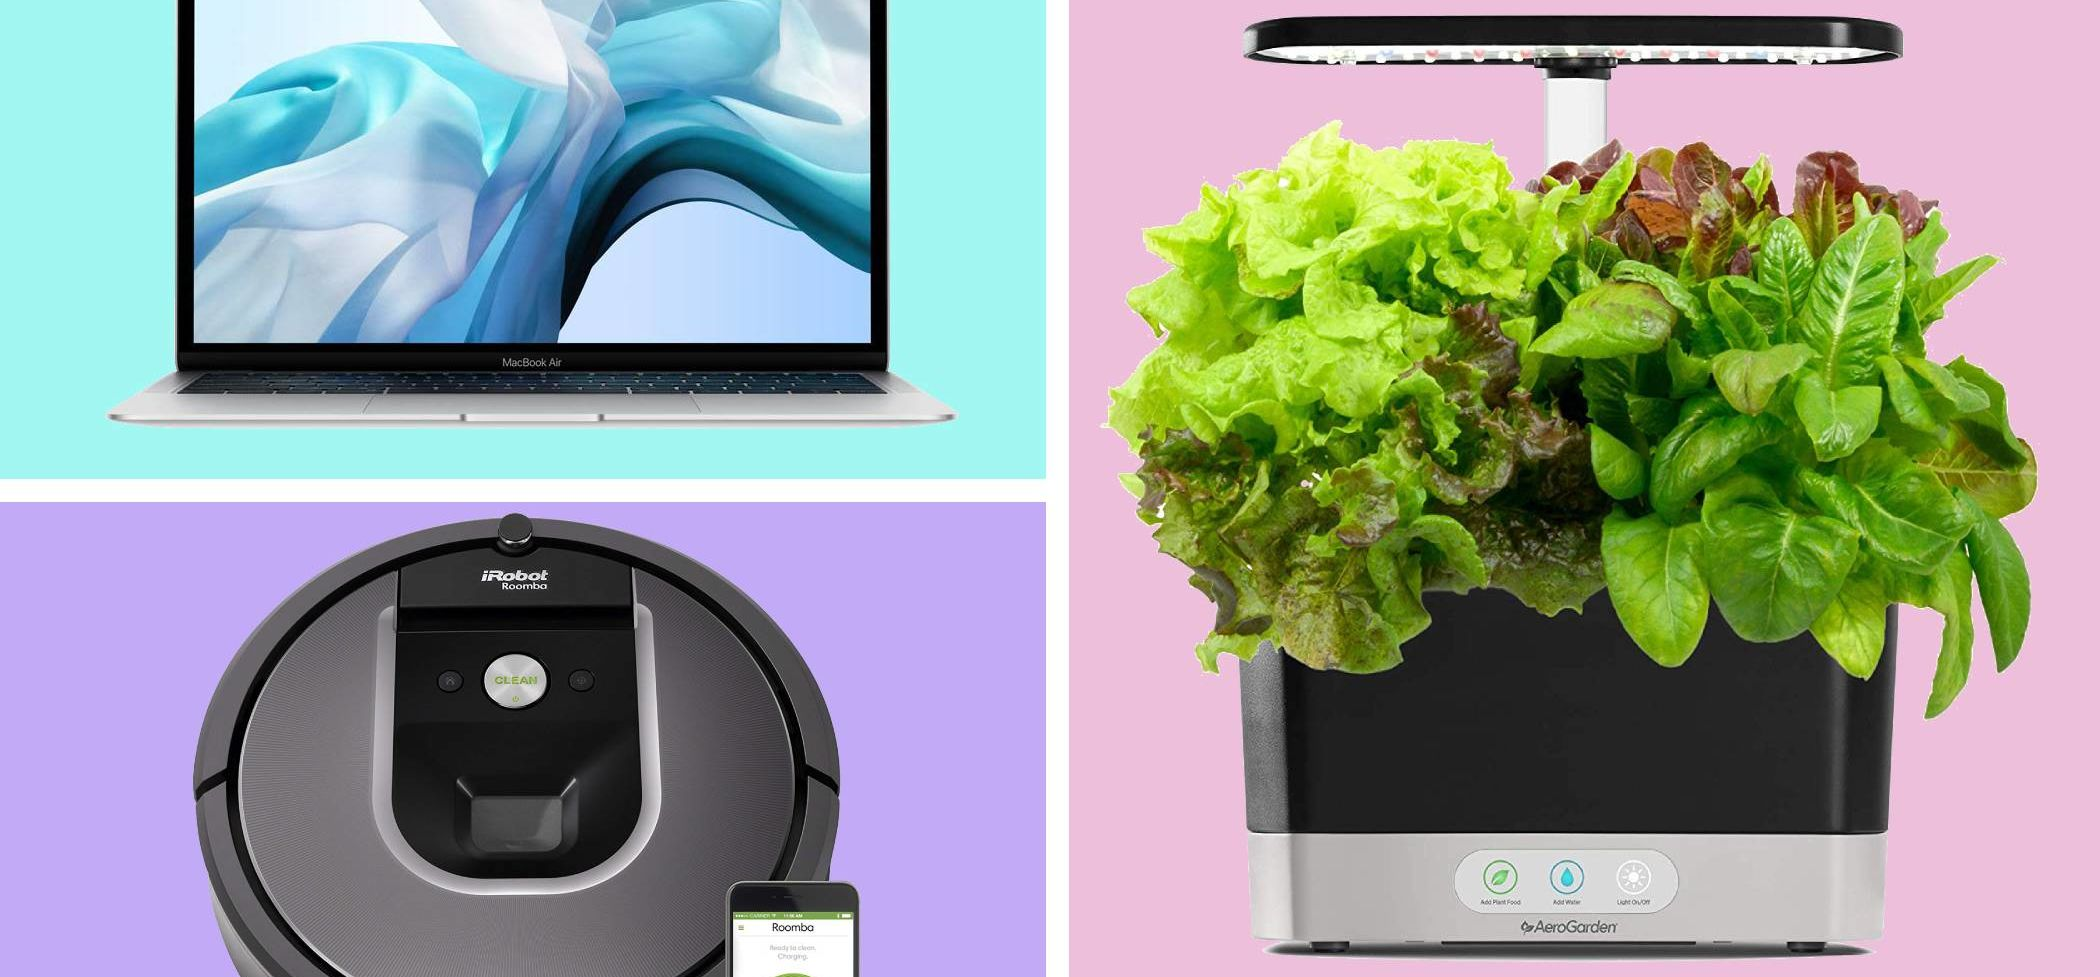 Wednesday's Best Amazon Deals Include the Apple MacBook Air, Humidifiers, and Indoor Gardens